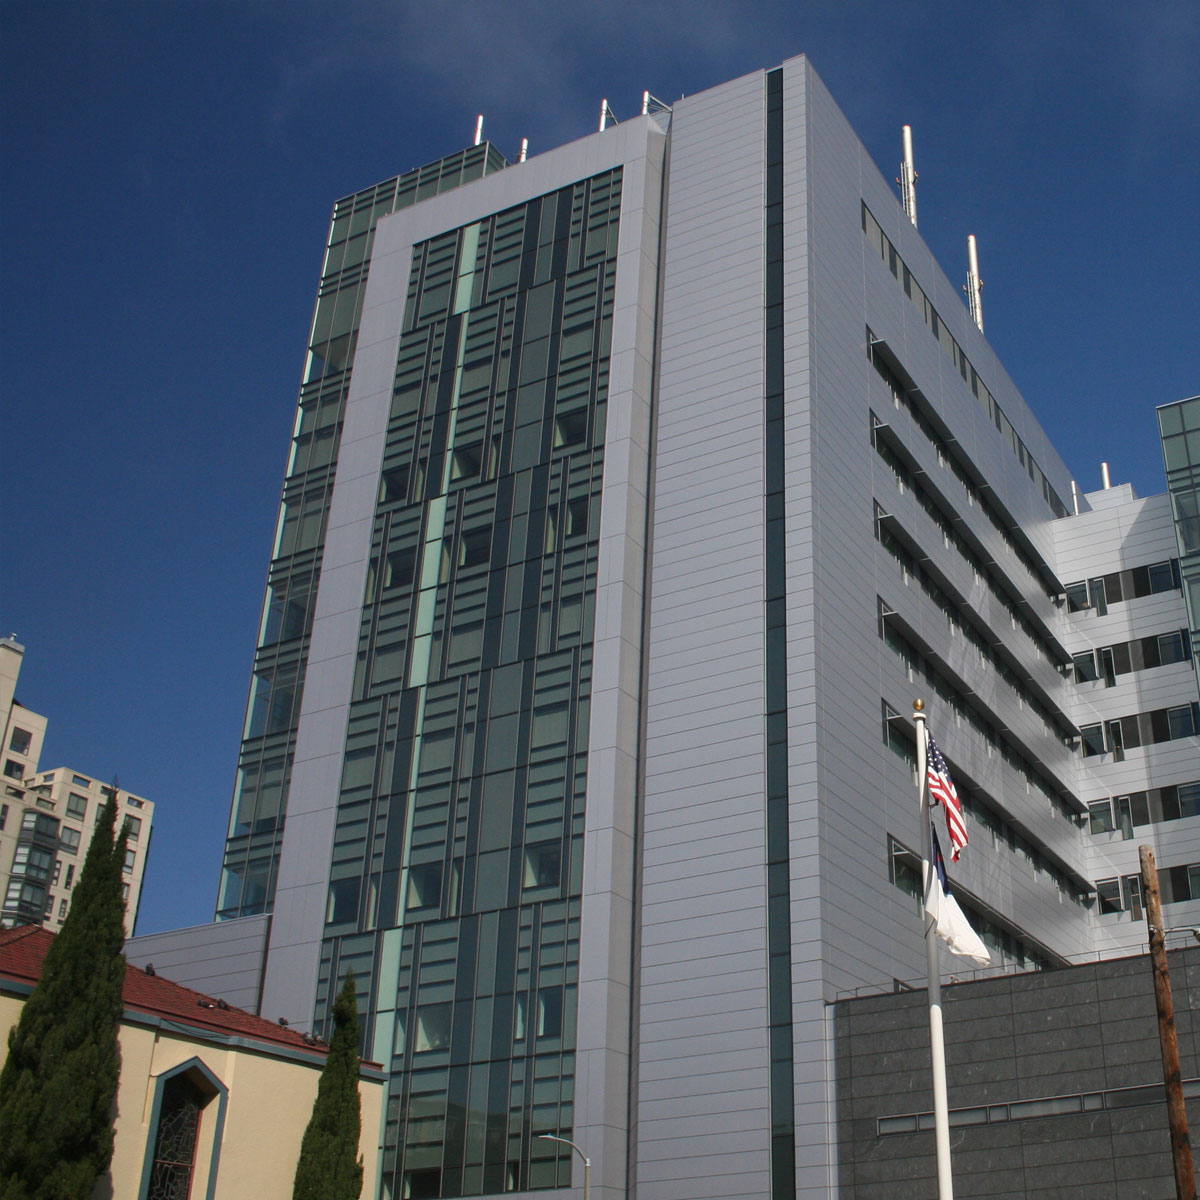 California Pacific Medical Center: Van Ness Geary Campus